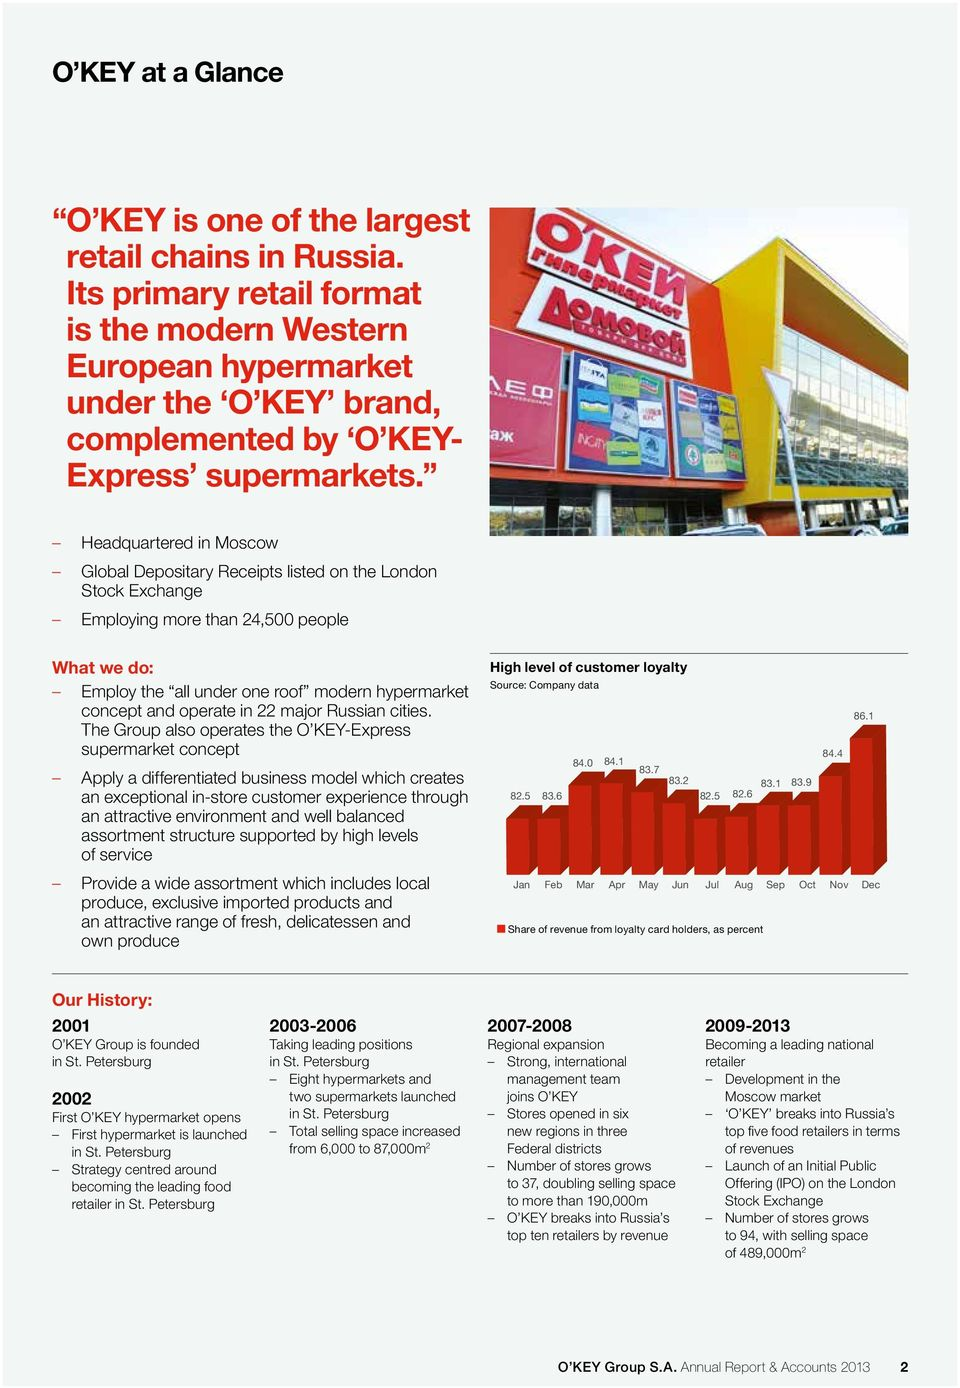 Headquartered in Moscow Global Depositary Receipts listed on the London Stock Exchange Employing more than 24,500 people What we do: Employ the all under one roof modern hypermarket concept and